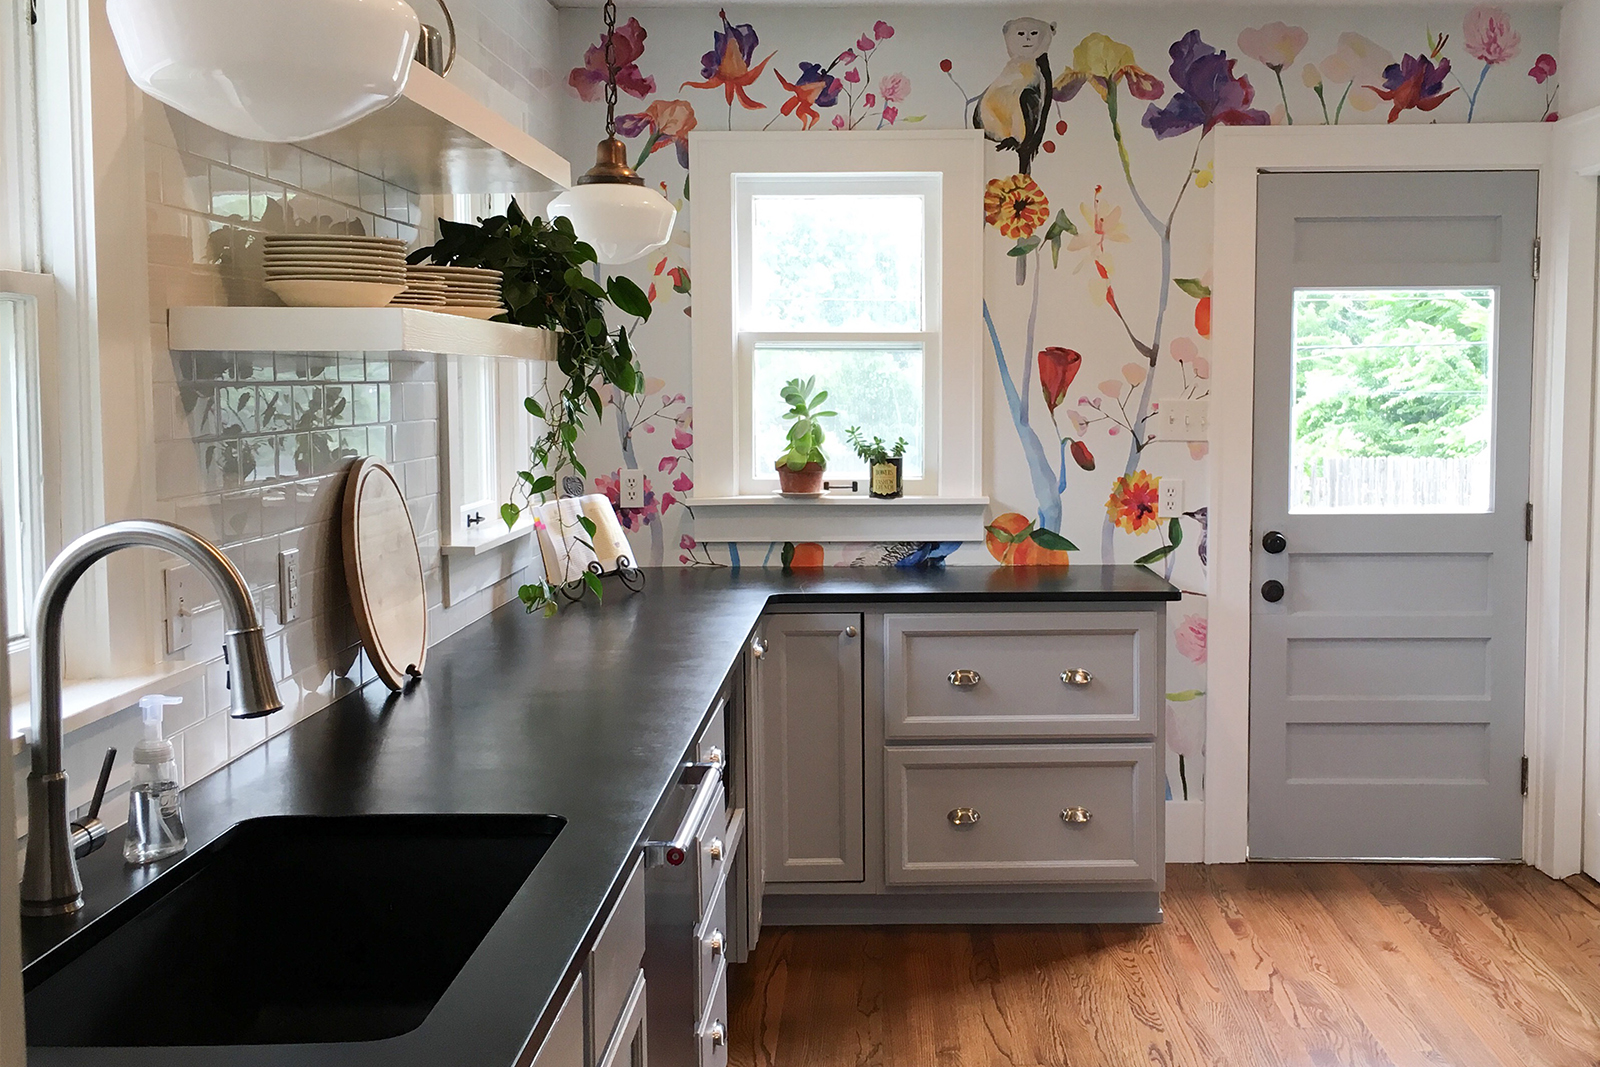 plan kitchen remodel | houselogic kitchen remodeling tips